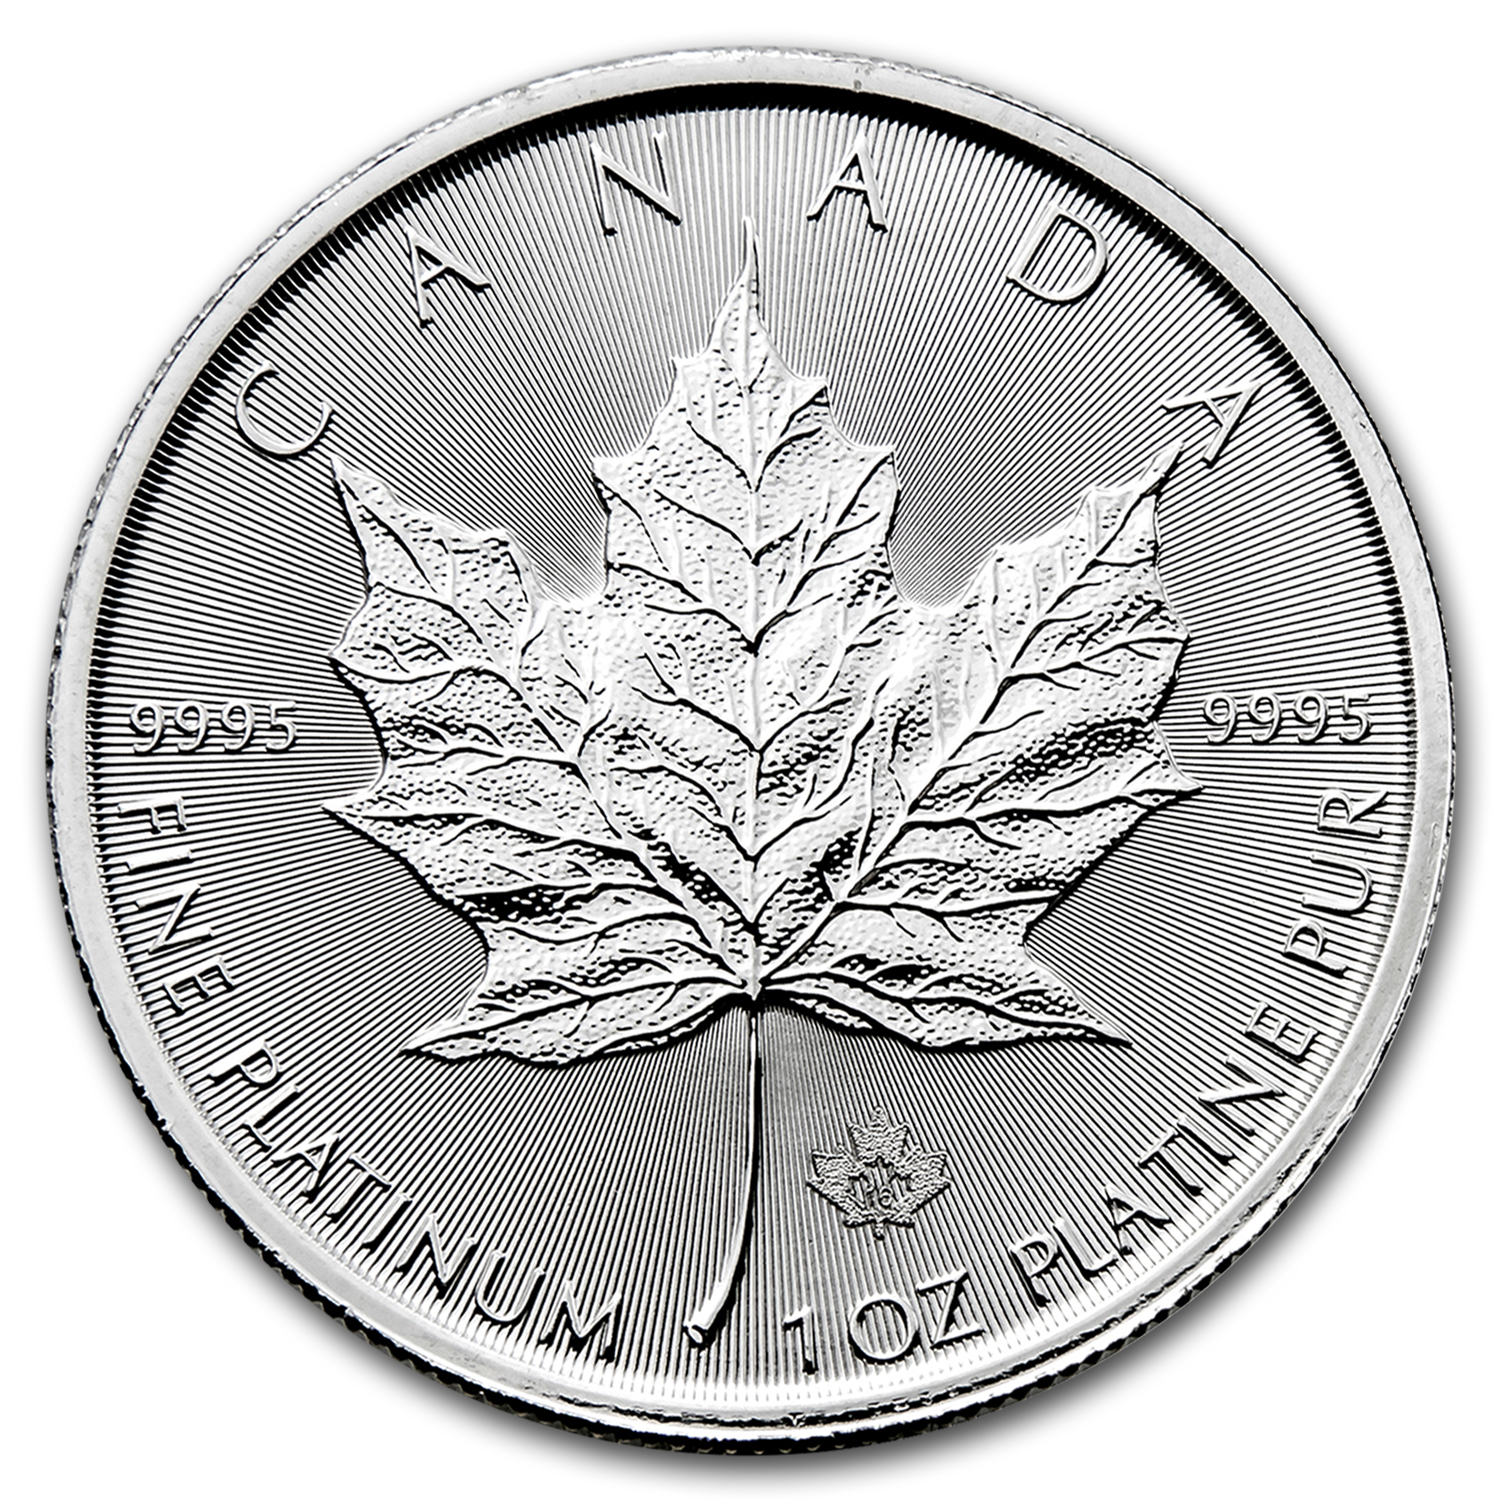 2016 Canada 1 oz Platinum Maple Leaf BU